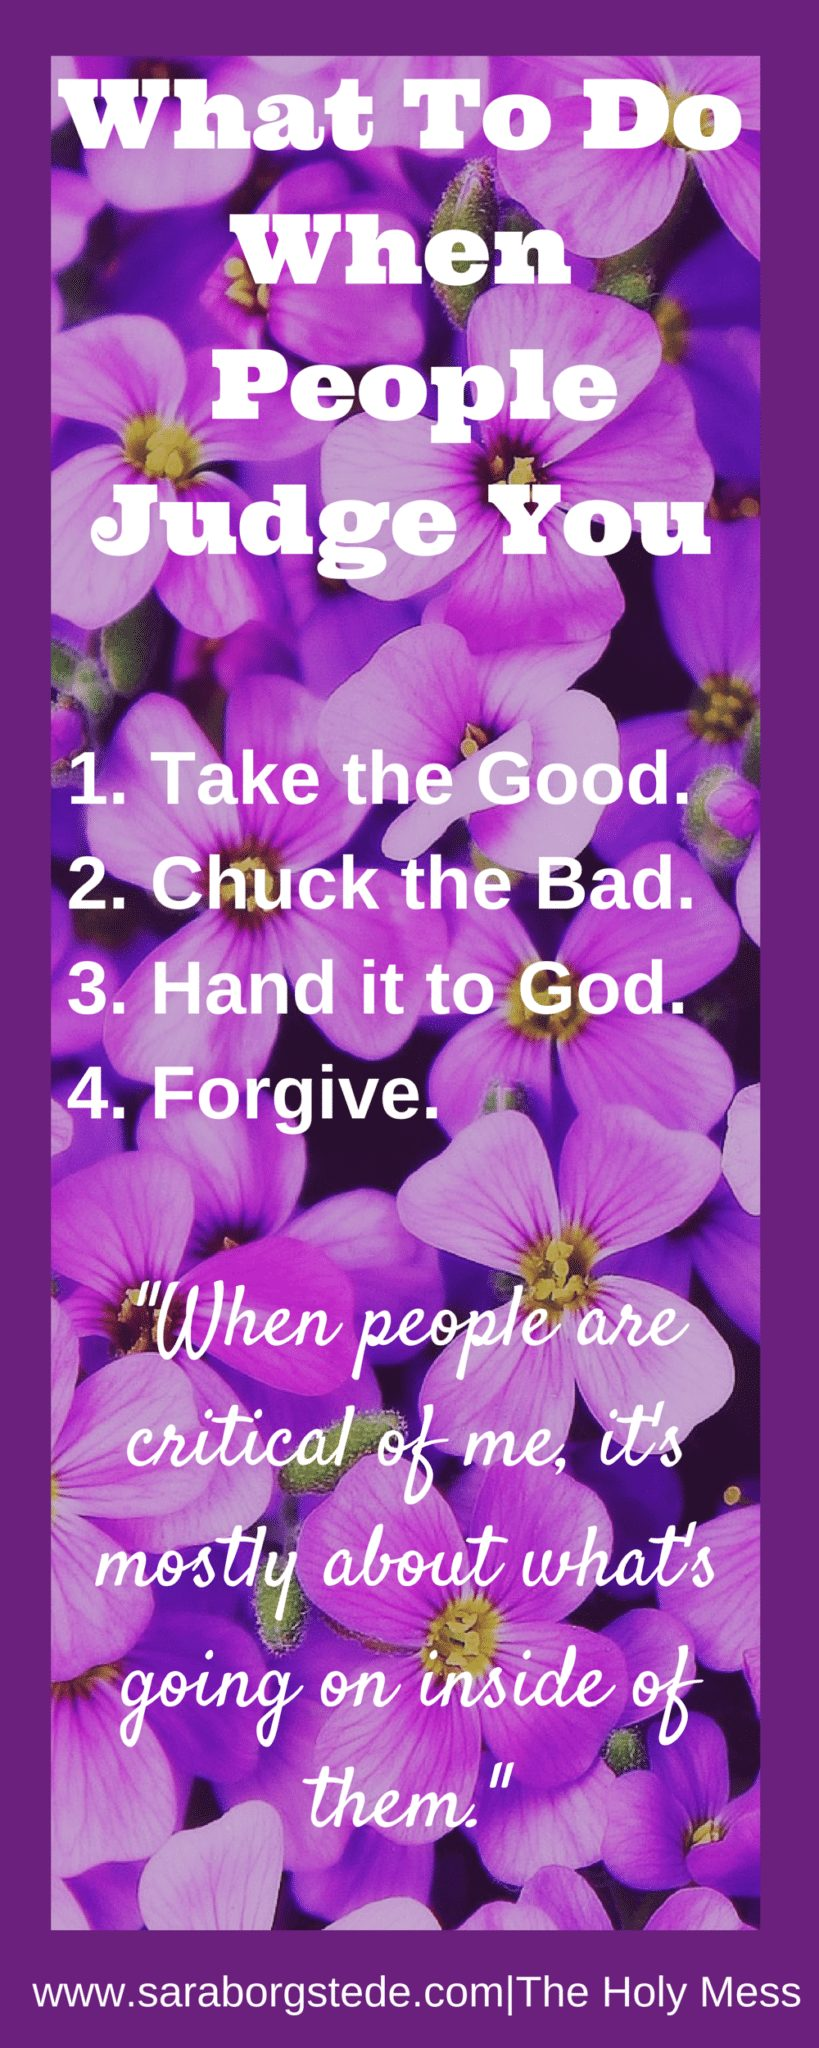 What To Do WhenPeople Judge You